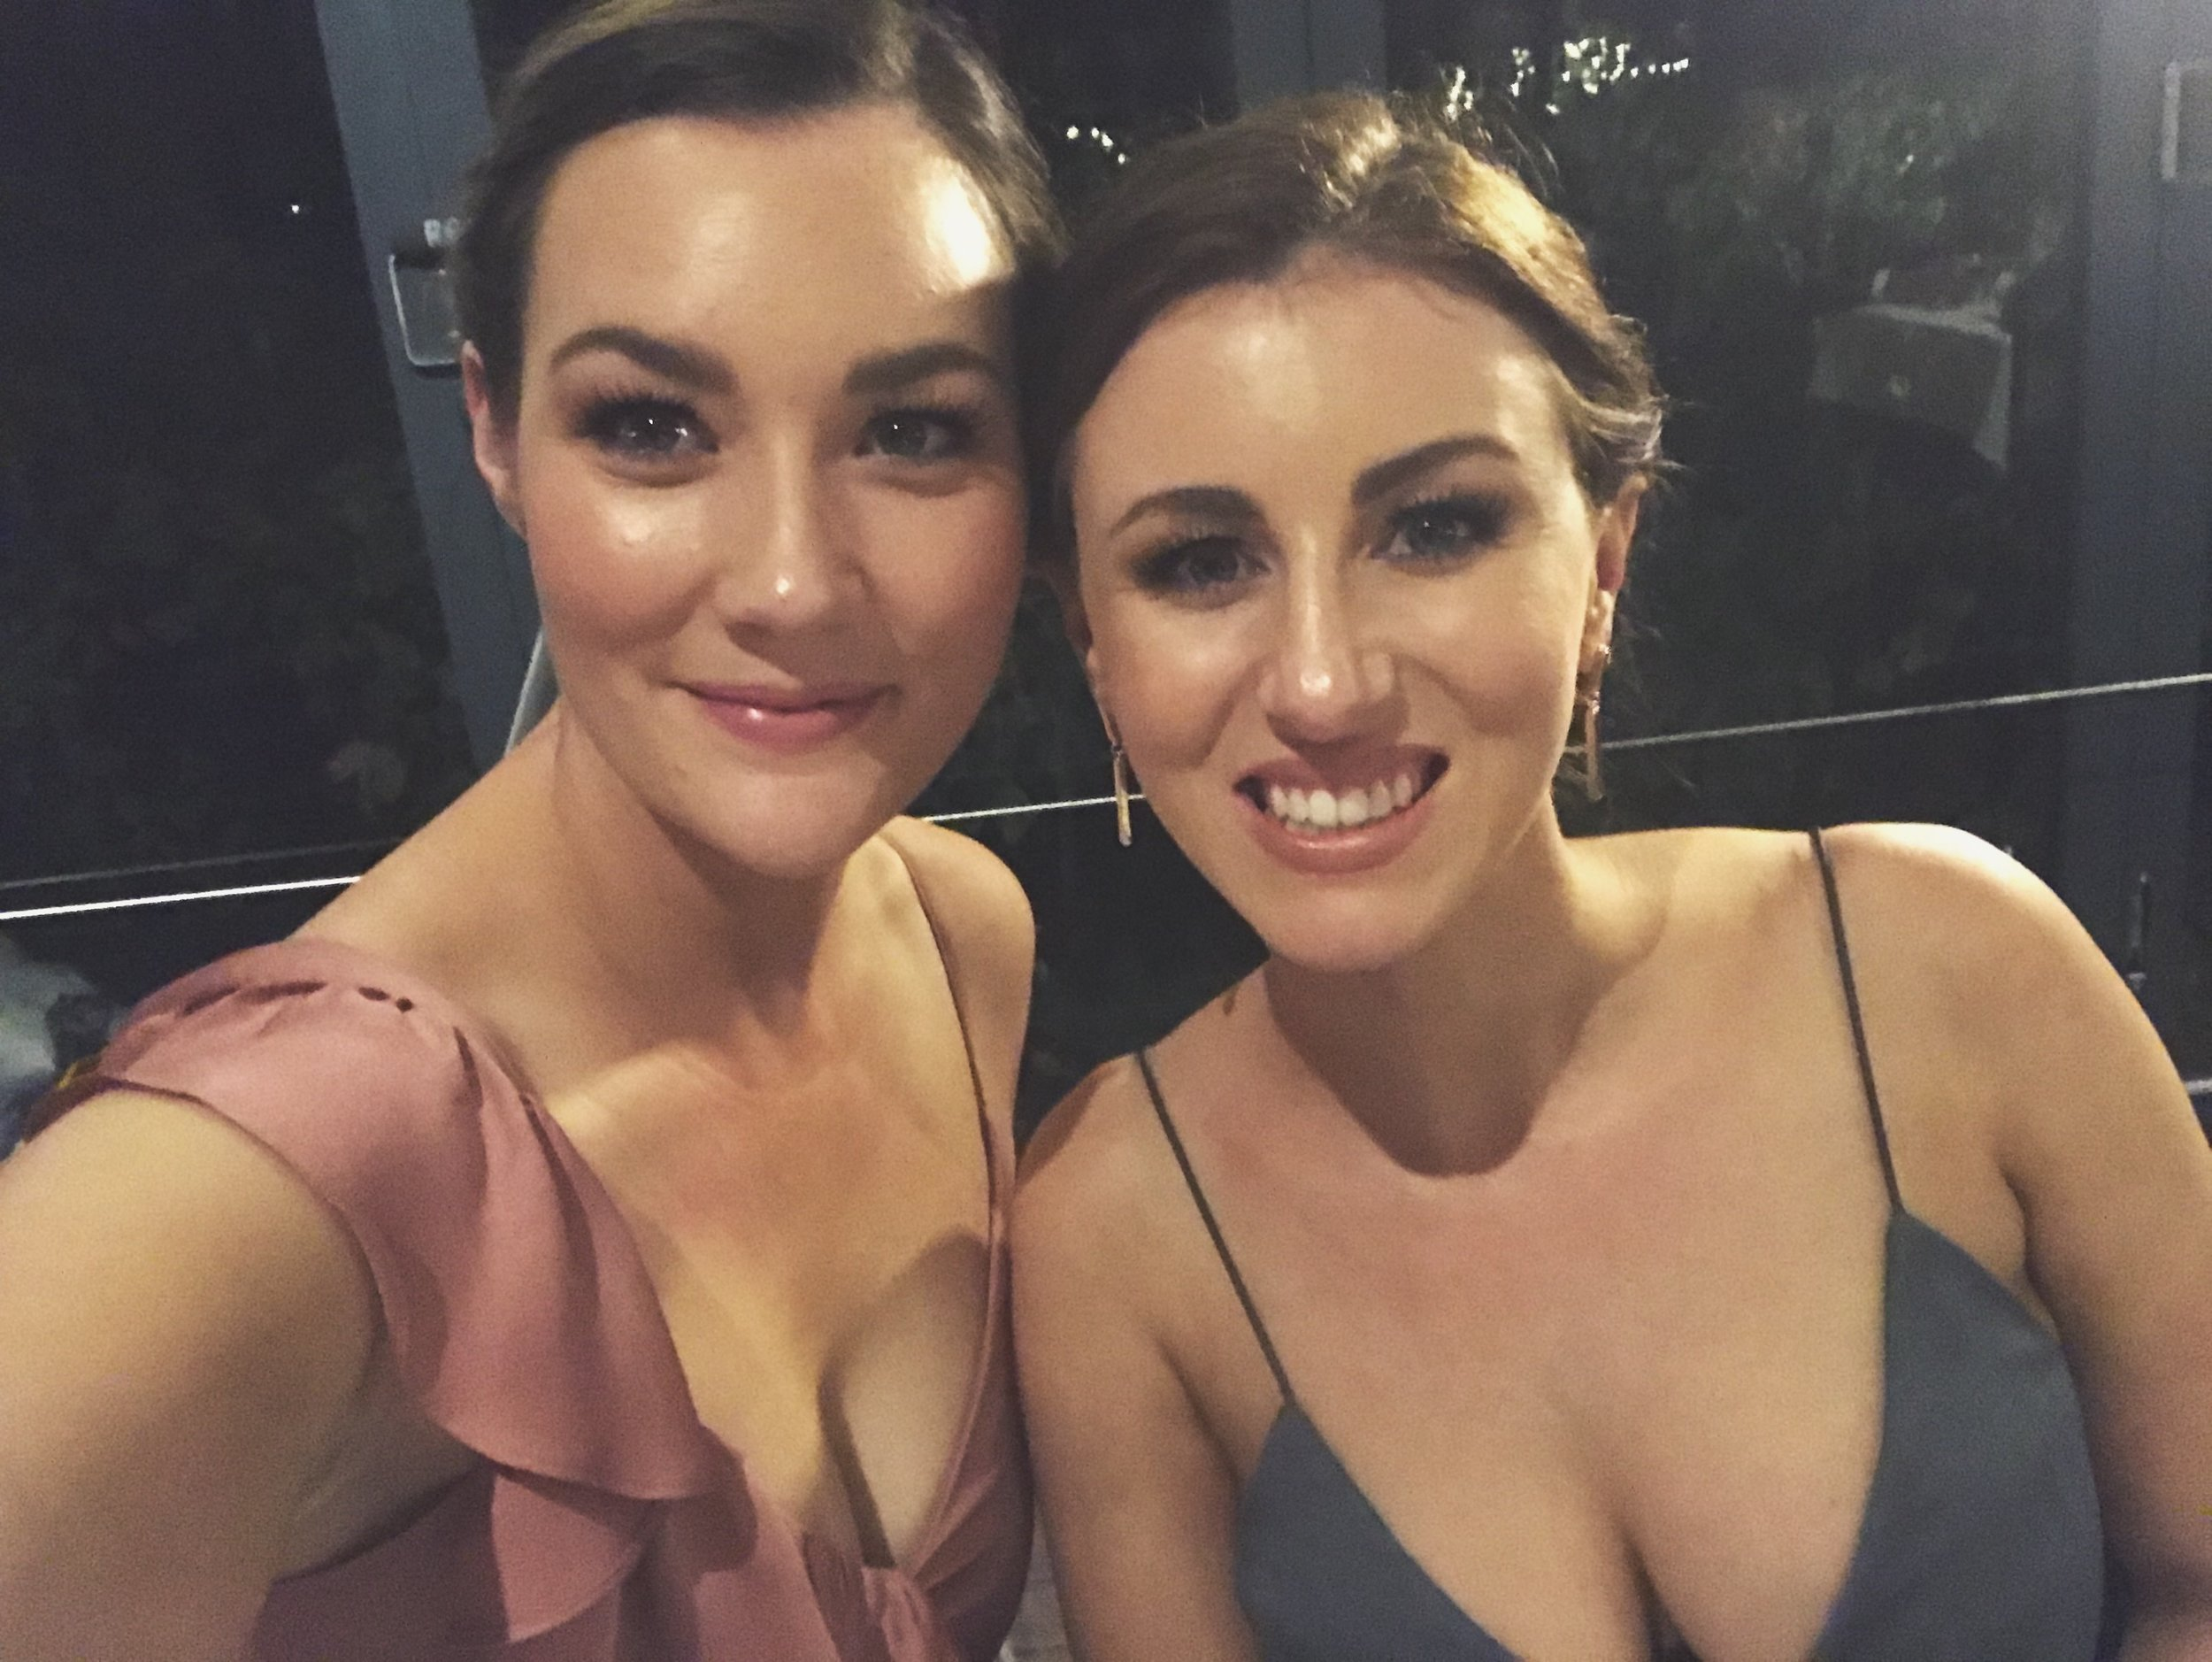 At my friends wedding with my bridesmaid buddy, Kim (right)